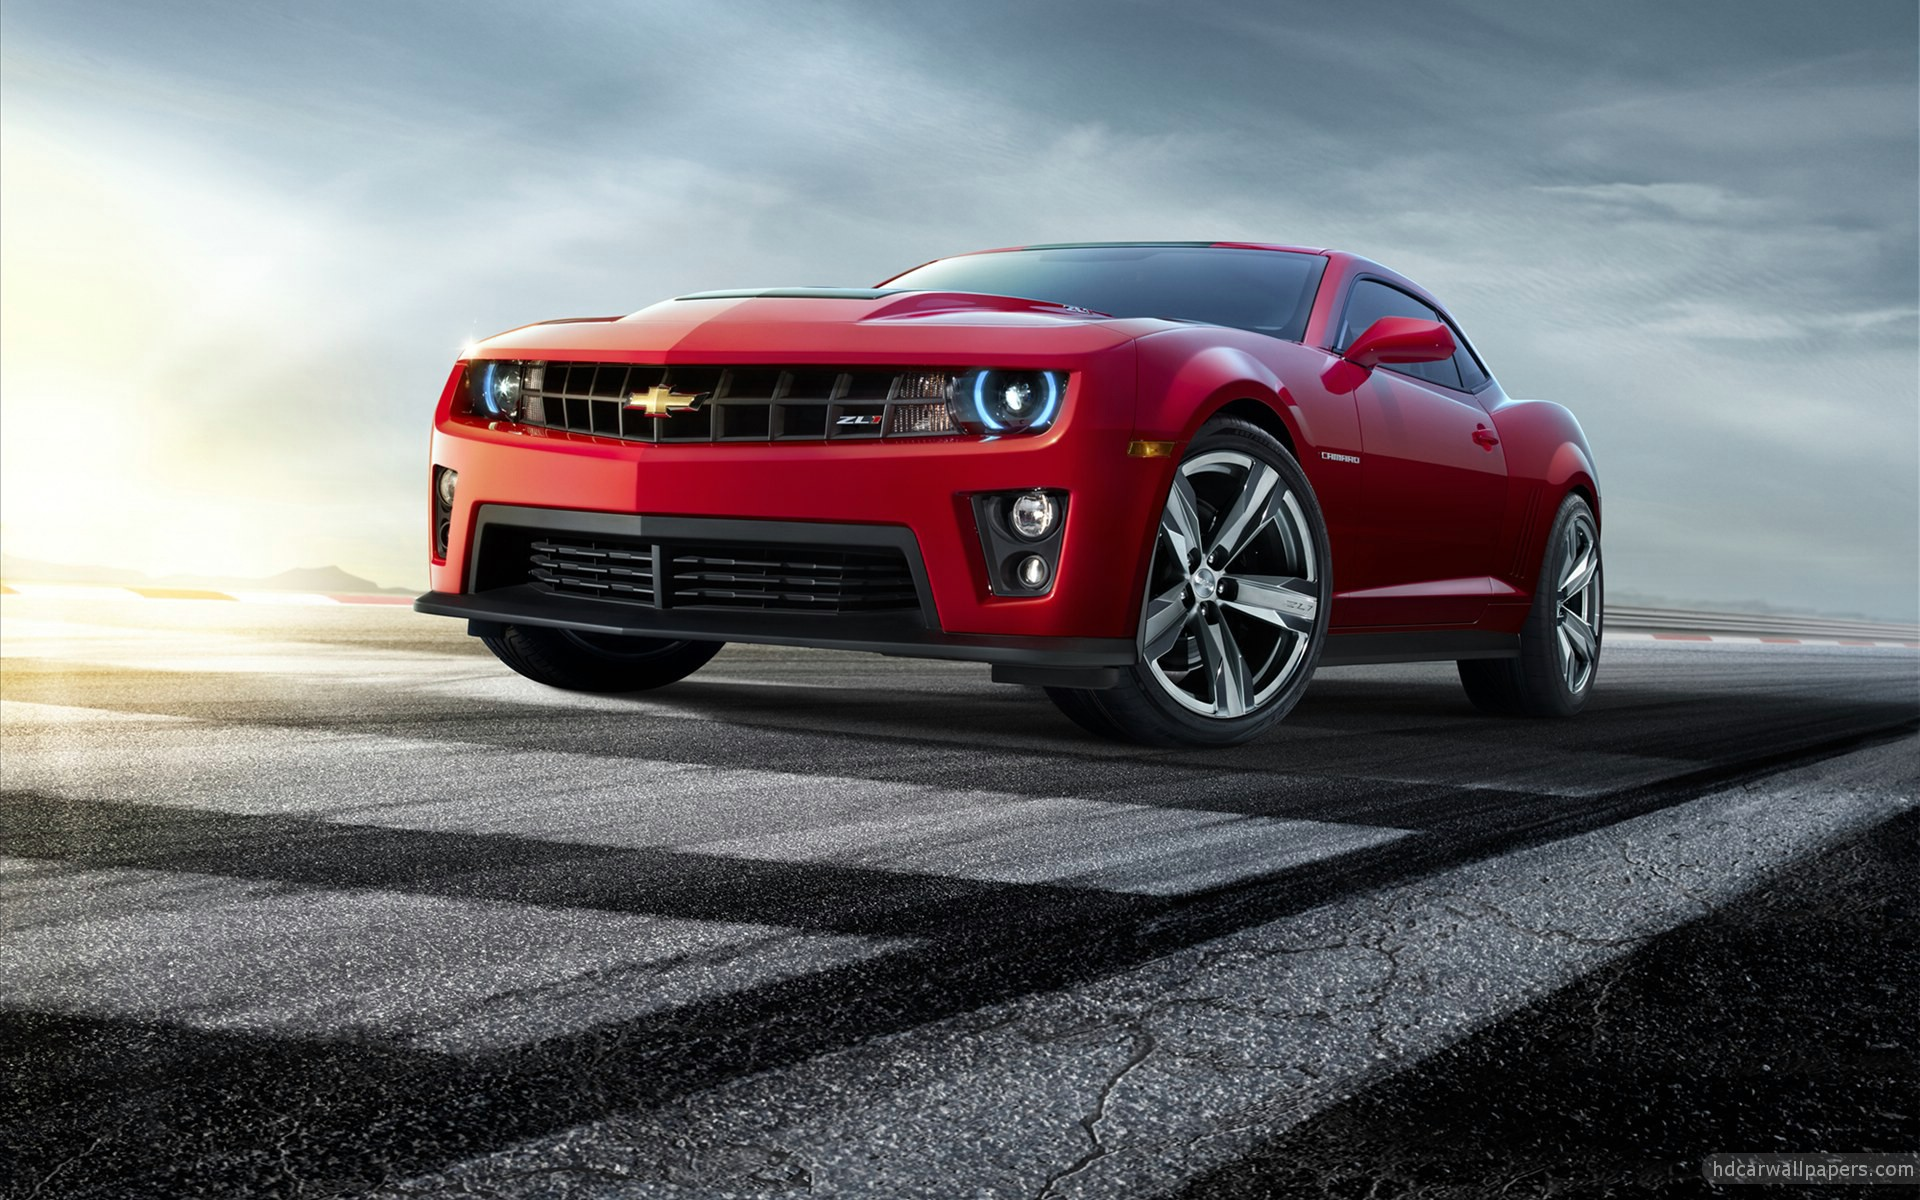 2012 Chevrolet Camaro Zl1 3 Wallpaper Hd Car Wallpapers